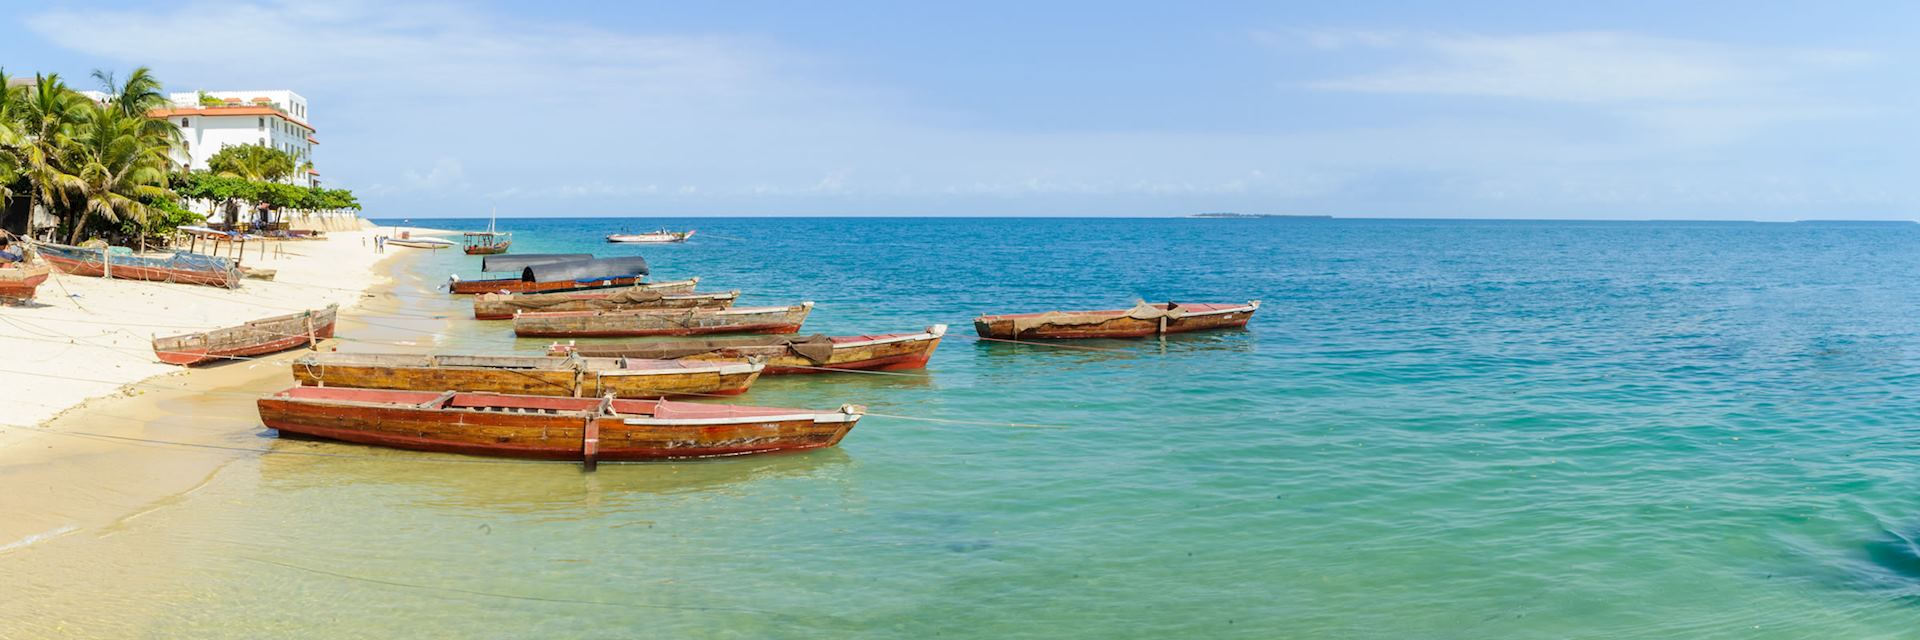 Boats on Tanzania's Swahili Coast